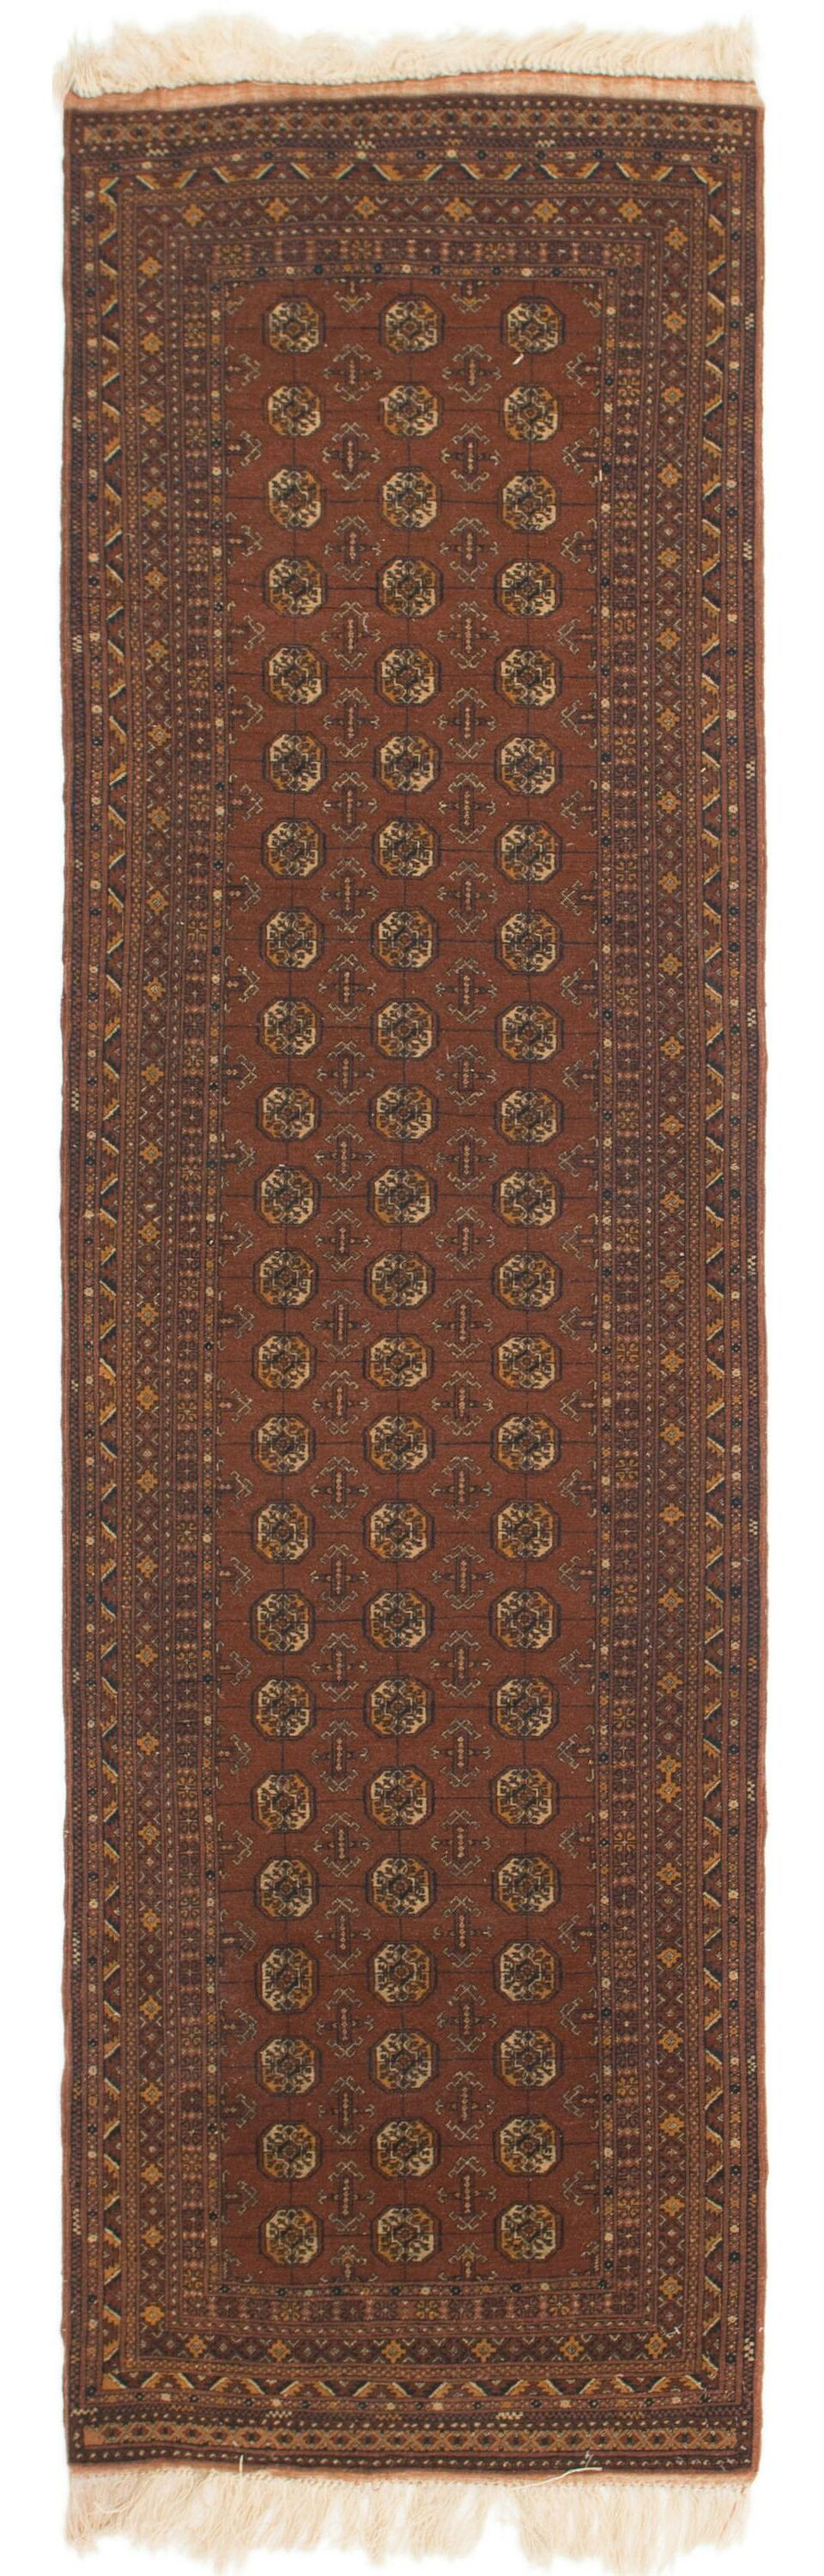 One-of-a-Kind Tekke Runner Hand-Knotted Wool Plum Red Area Rug